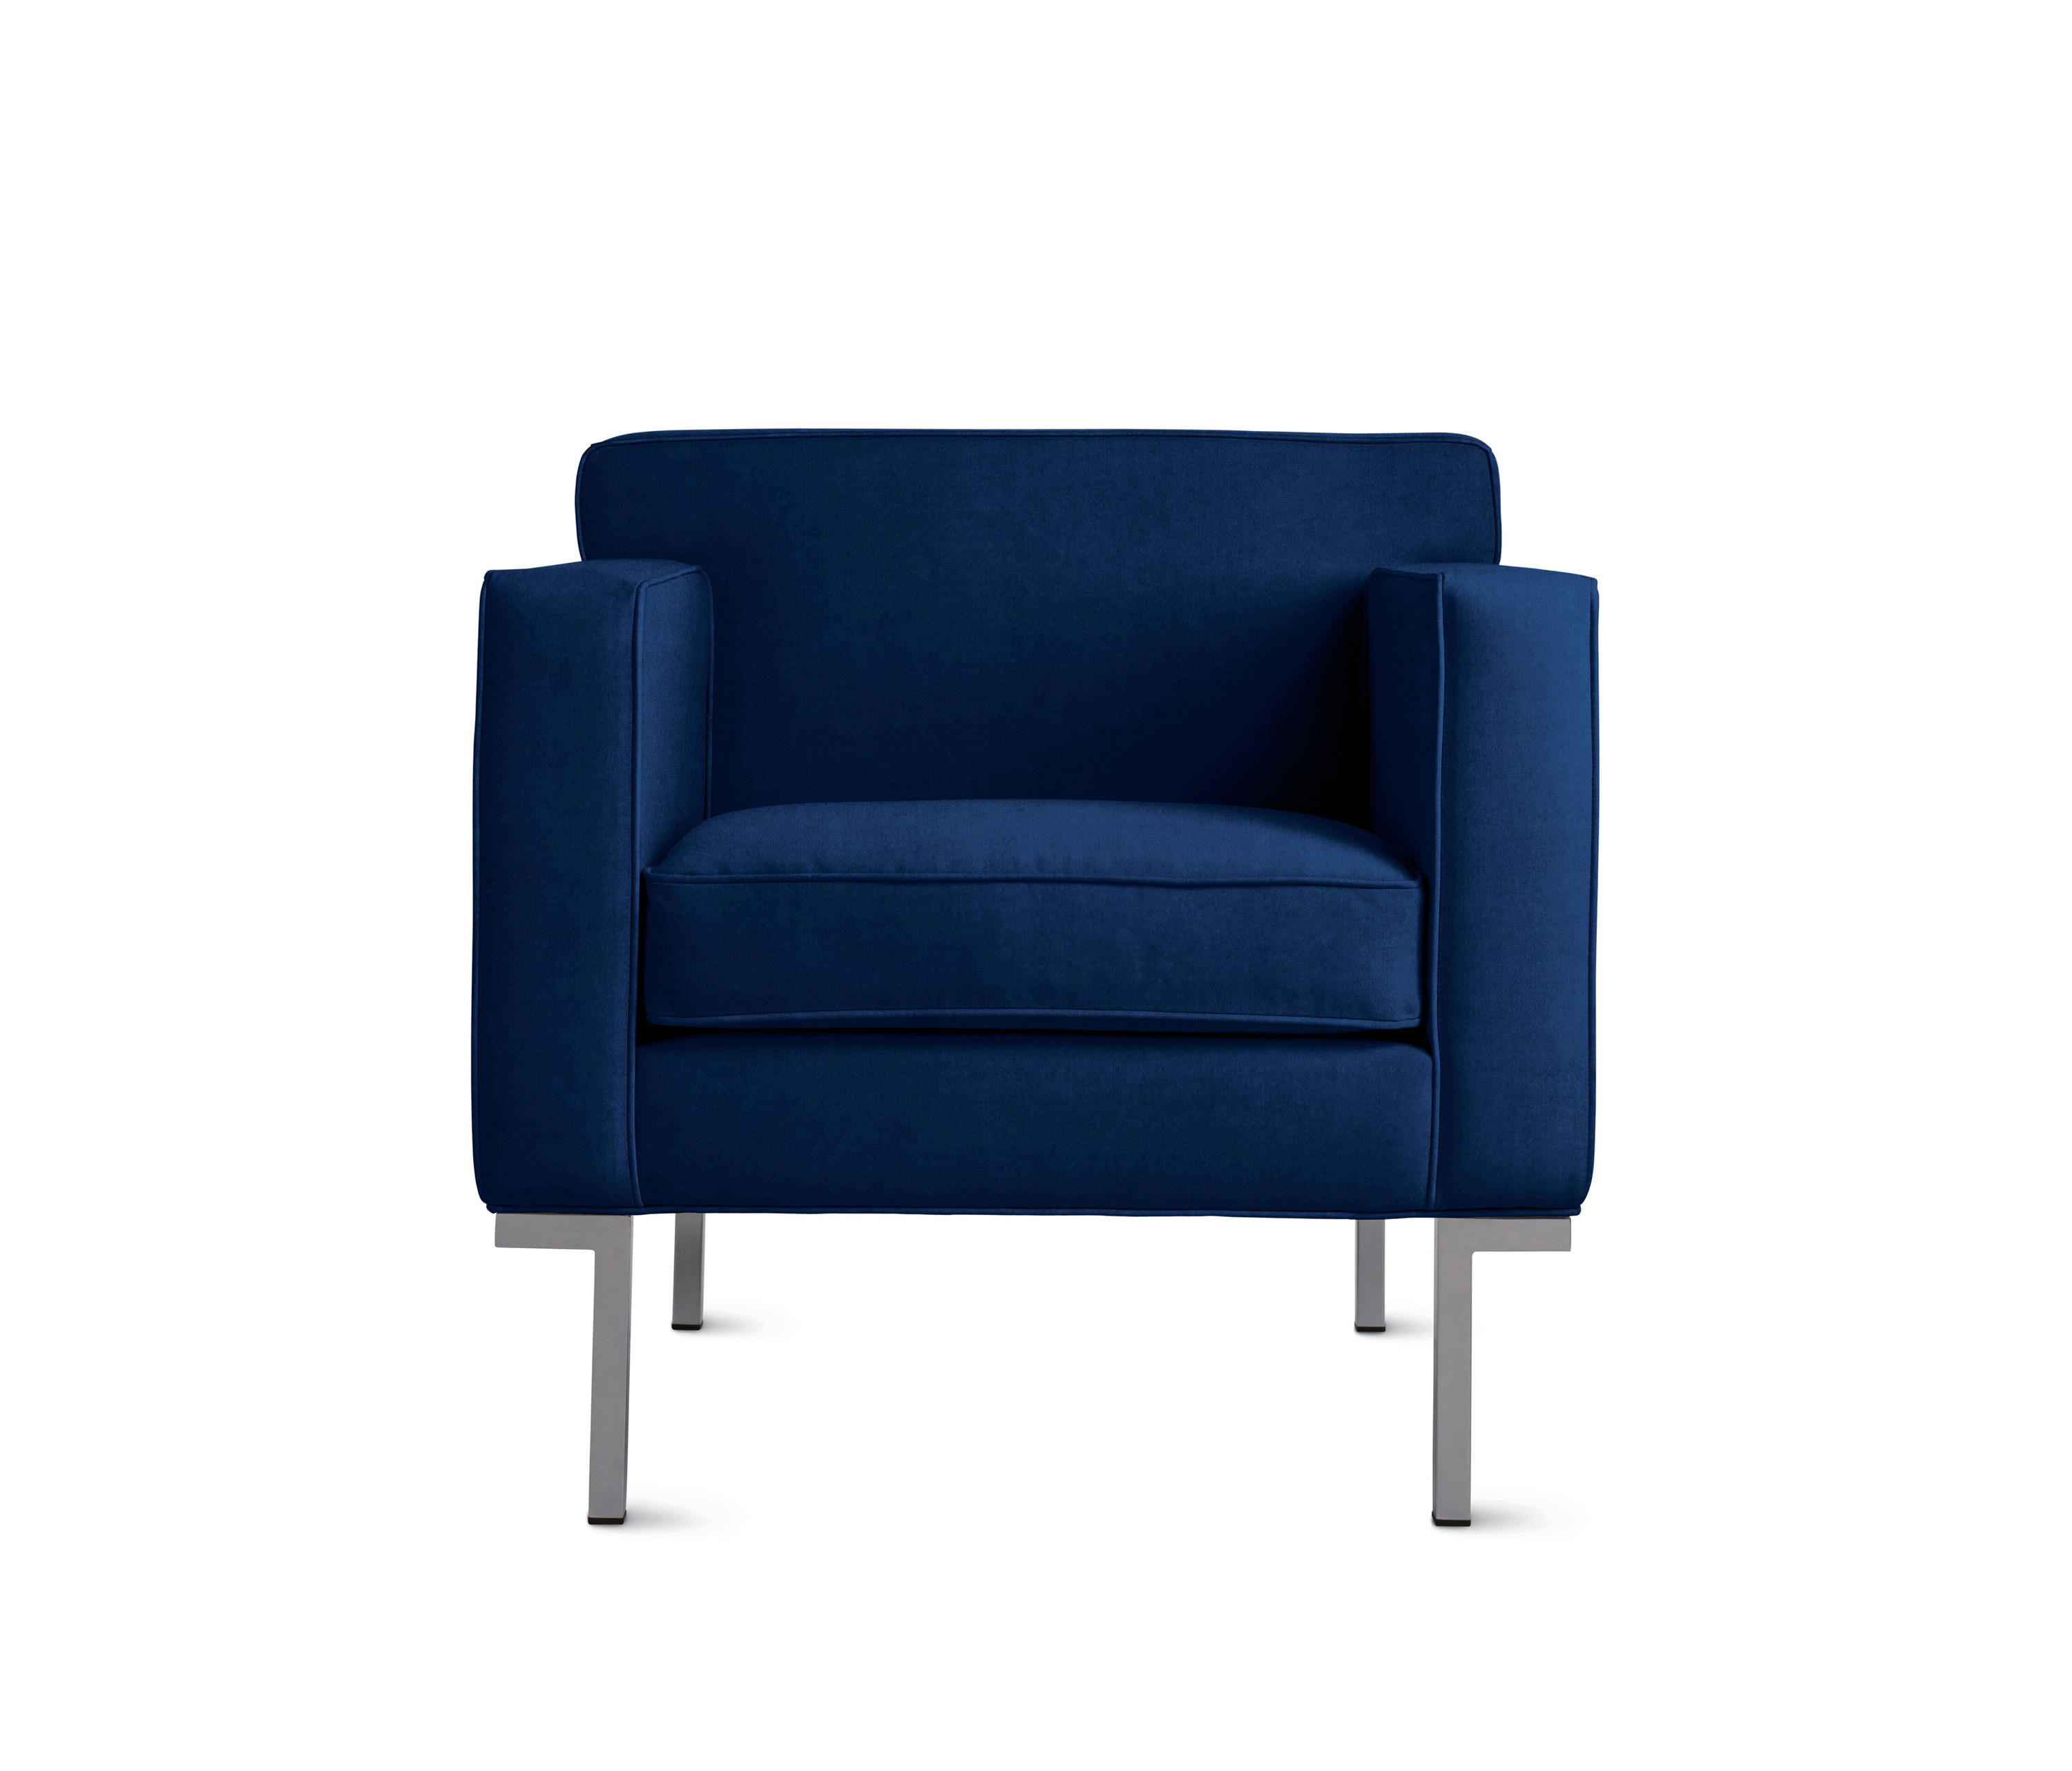 dwr theatre sofa review best ikea collection design within reach